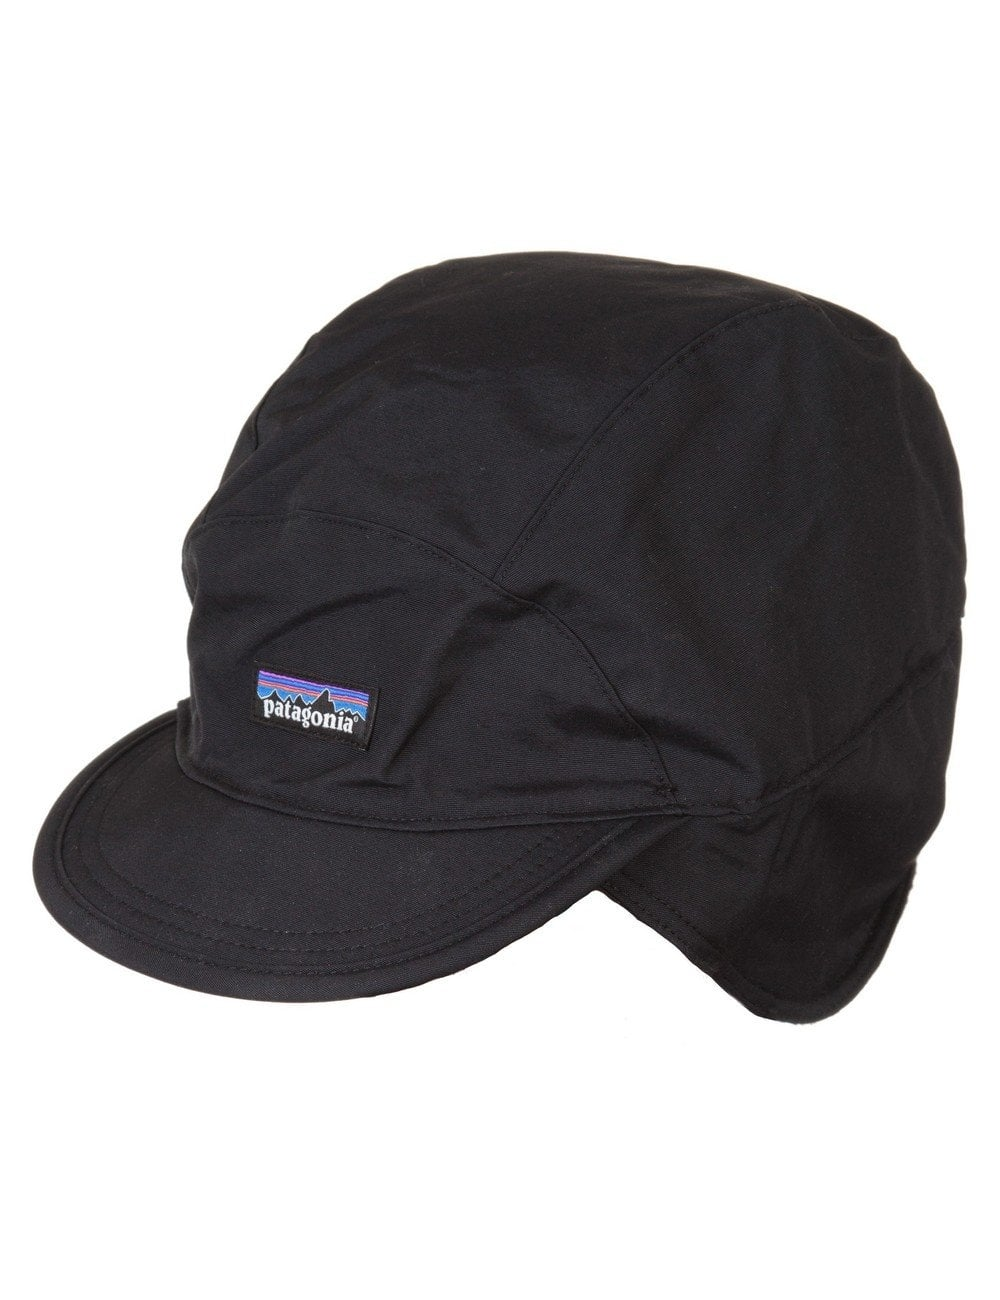 Patagonia Shelled Synchilla Duckbill Cap - Black - Accessories from ... aa3df2e52da